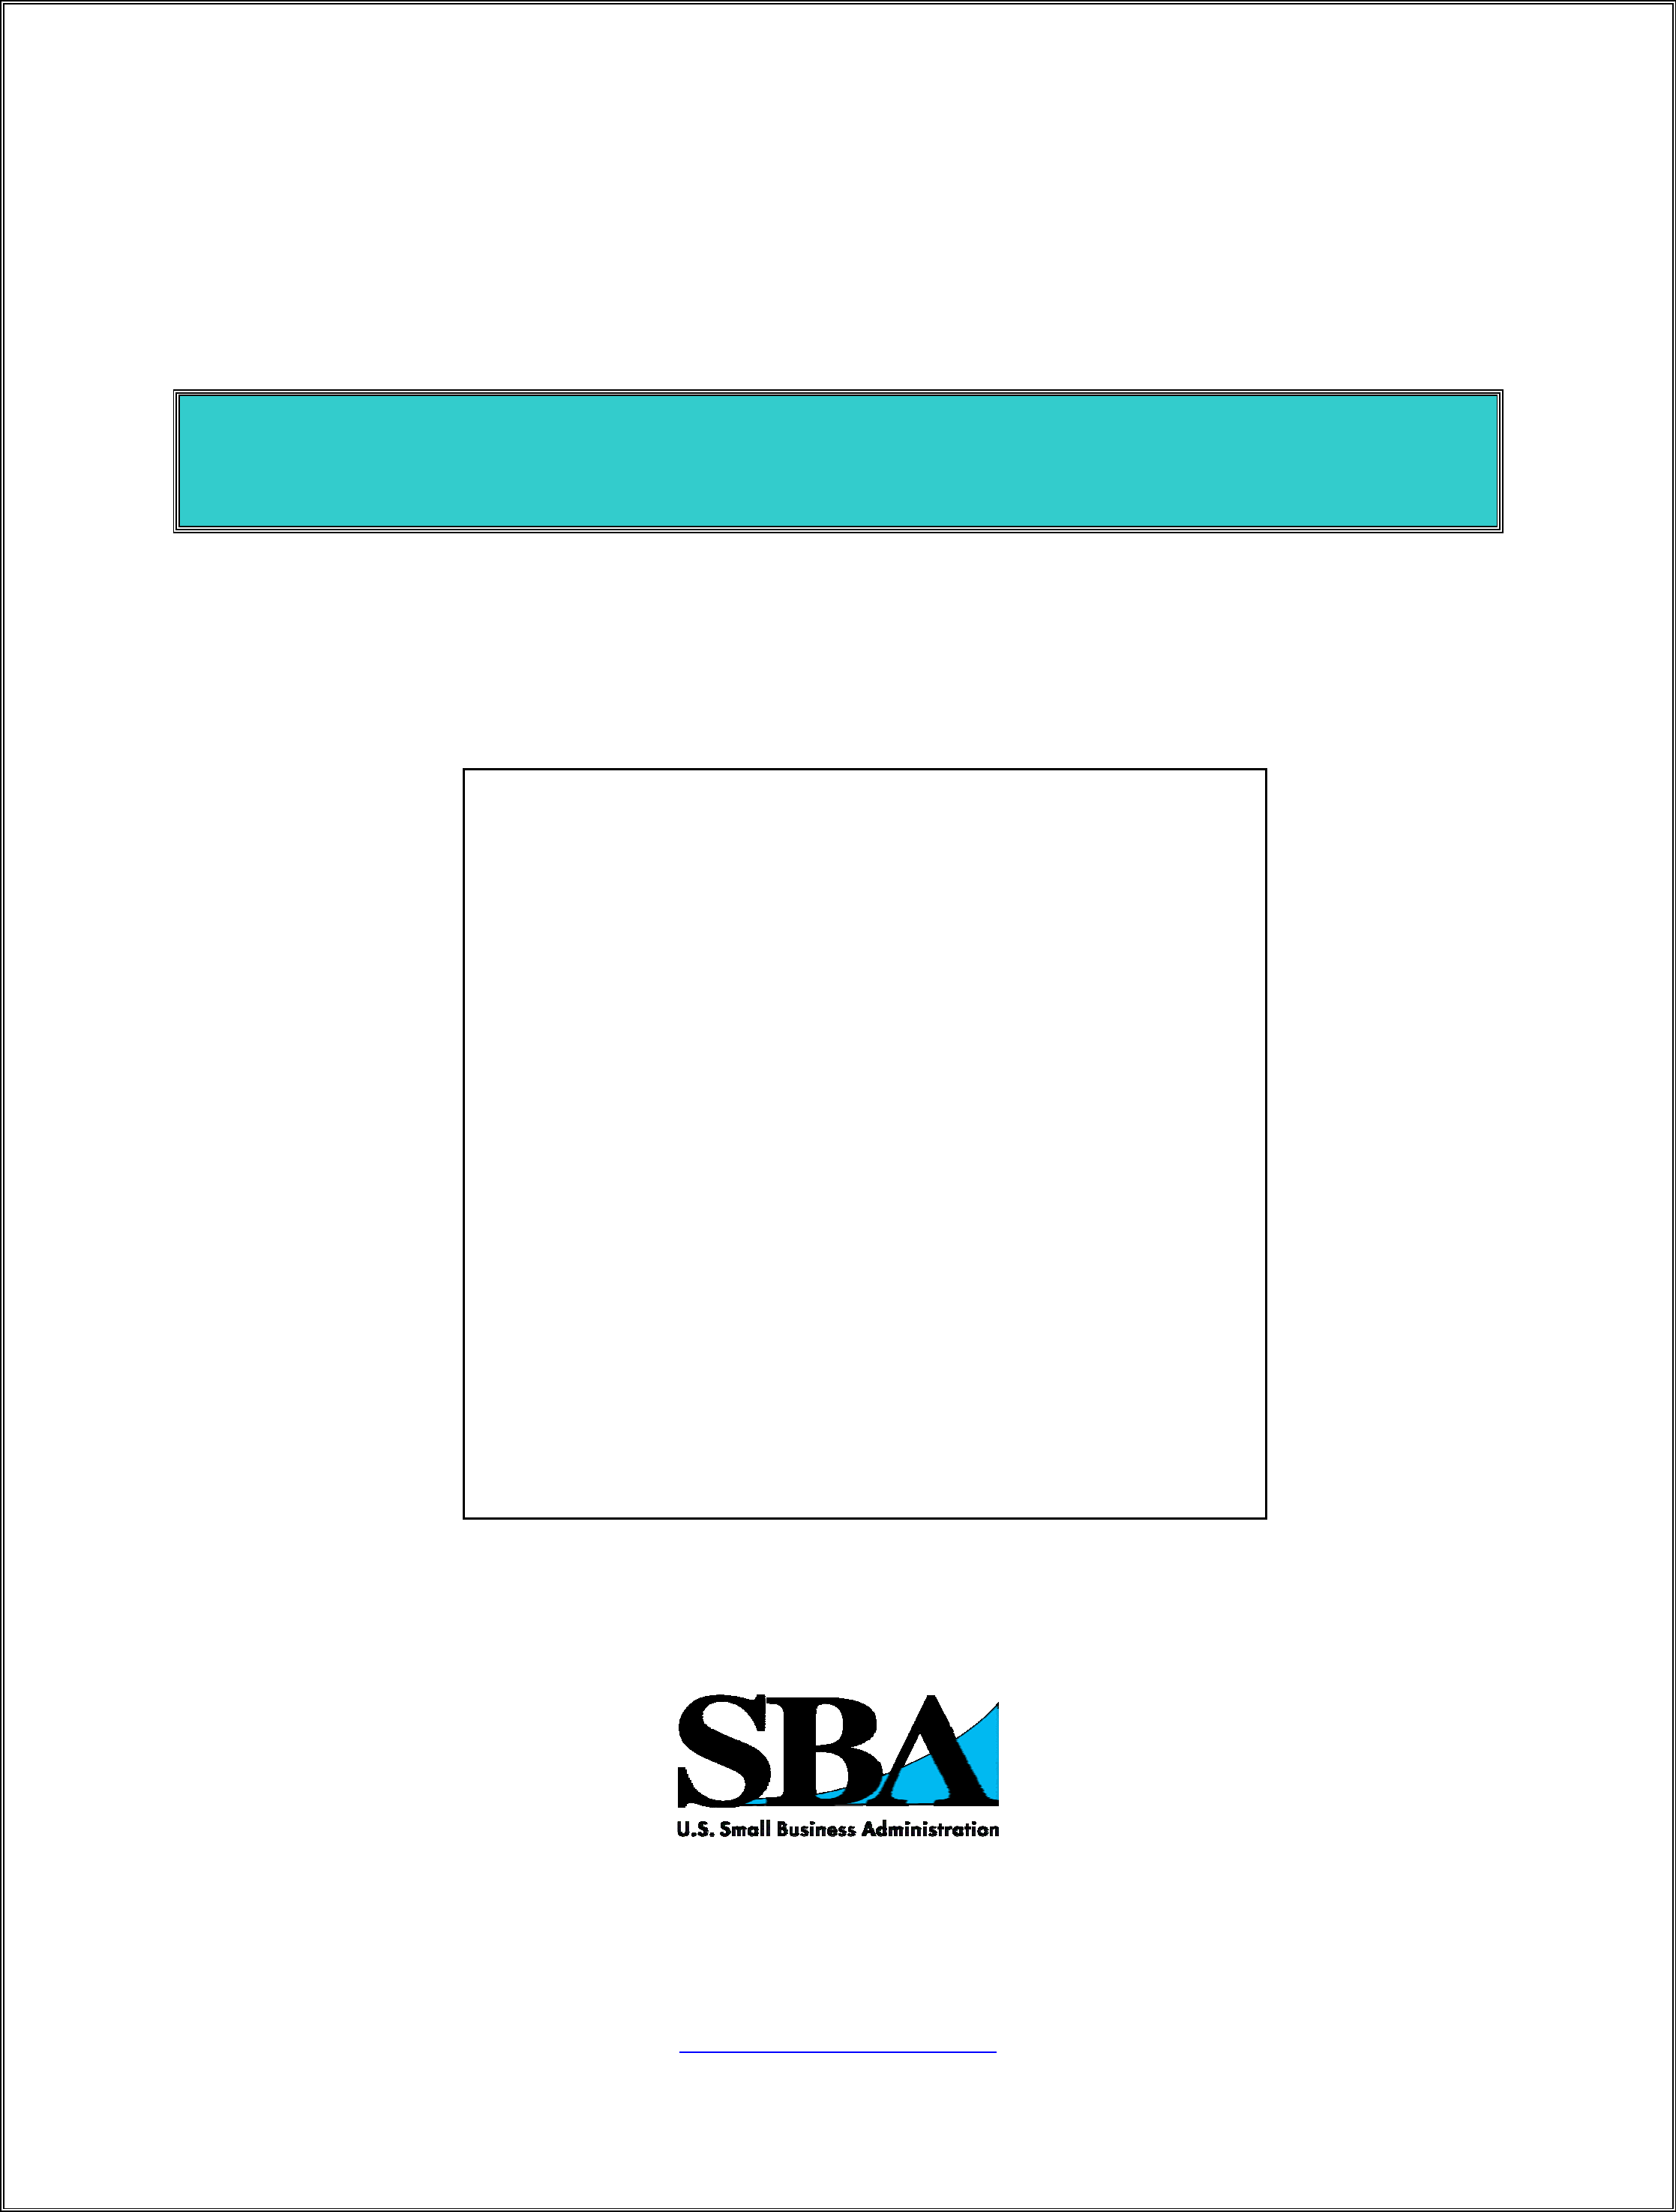 Sample Business Plan Template Free Download - Small business administration business plan template